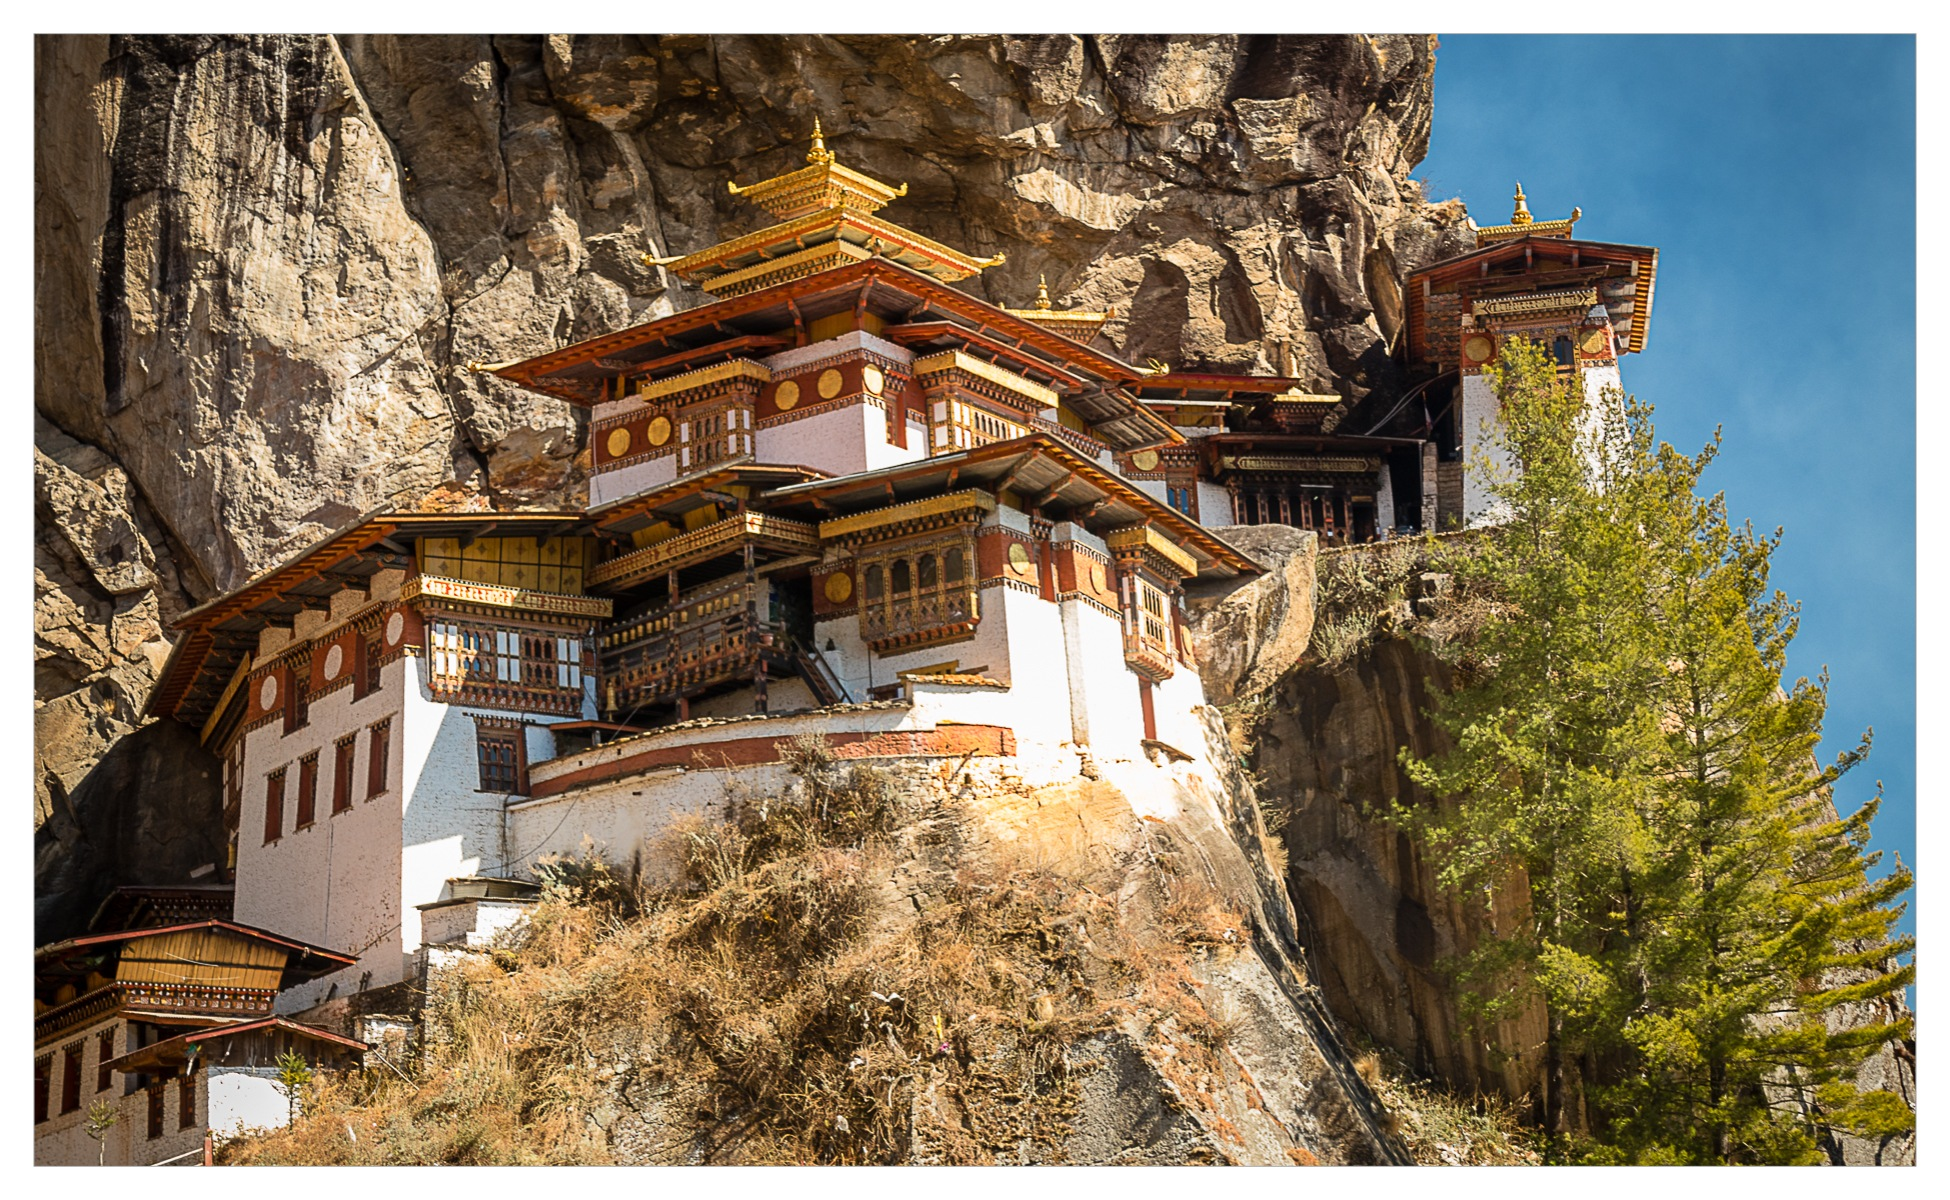 Tiger's Nest / Paro Taktsang in Bhutan by faizalmoidu